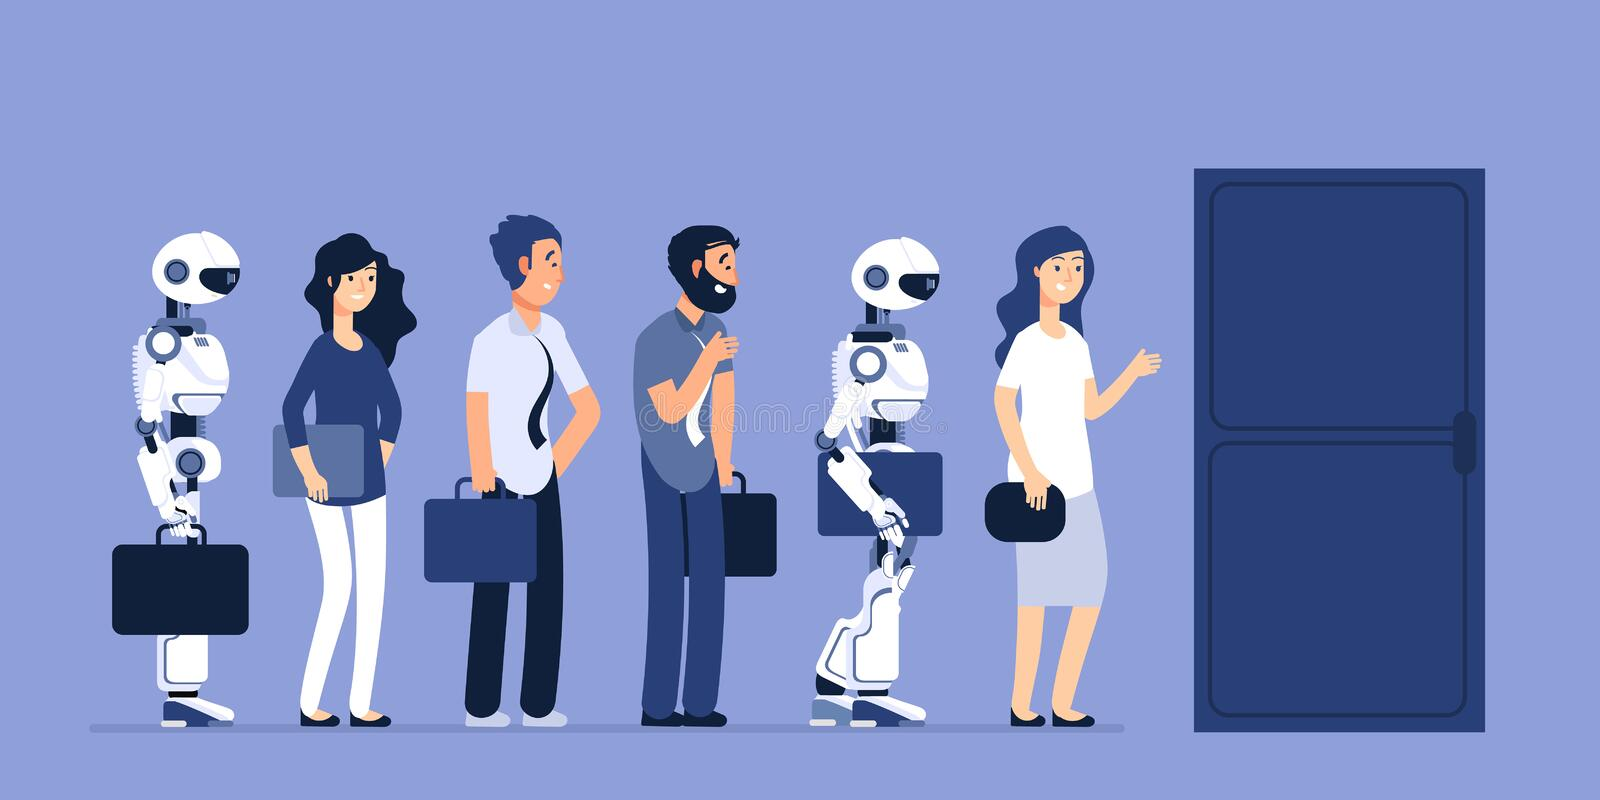 Robots and people unemployment. Android and man competition for job. Recruitment vector concept. Job, recruitment robotic and human illustration royalty free illustration